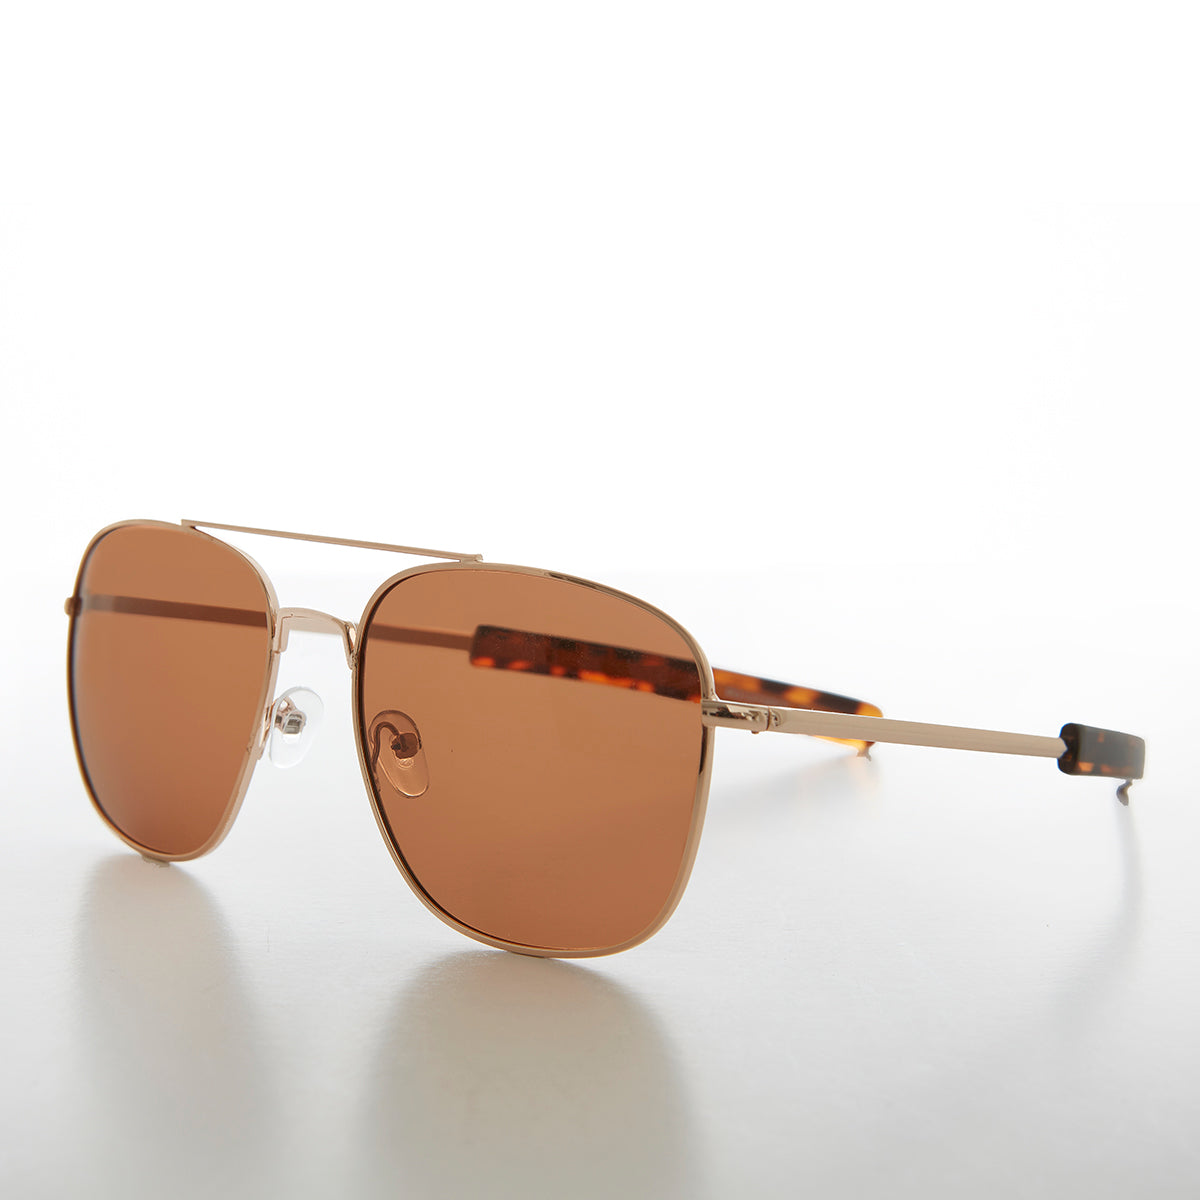 Square Aviator Sunglass with Polarized Lens